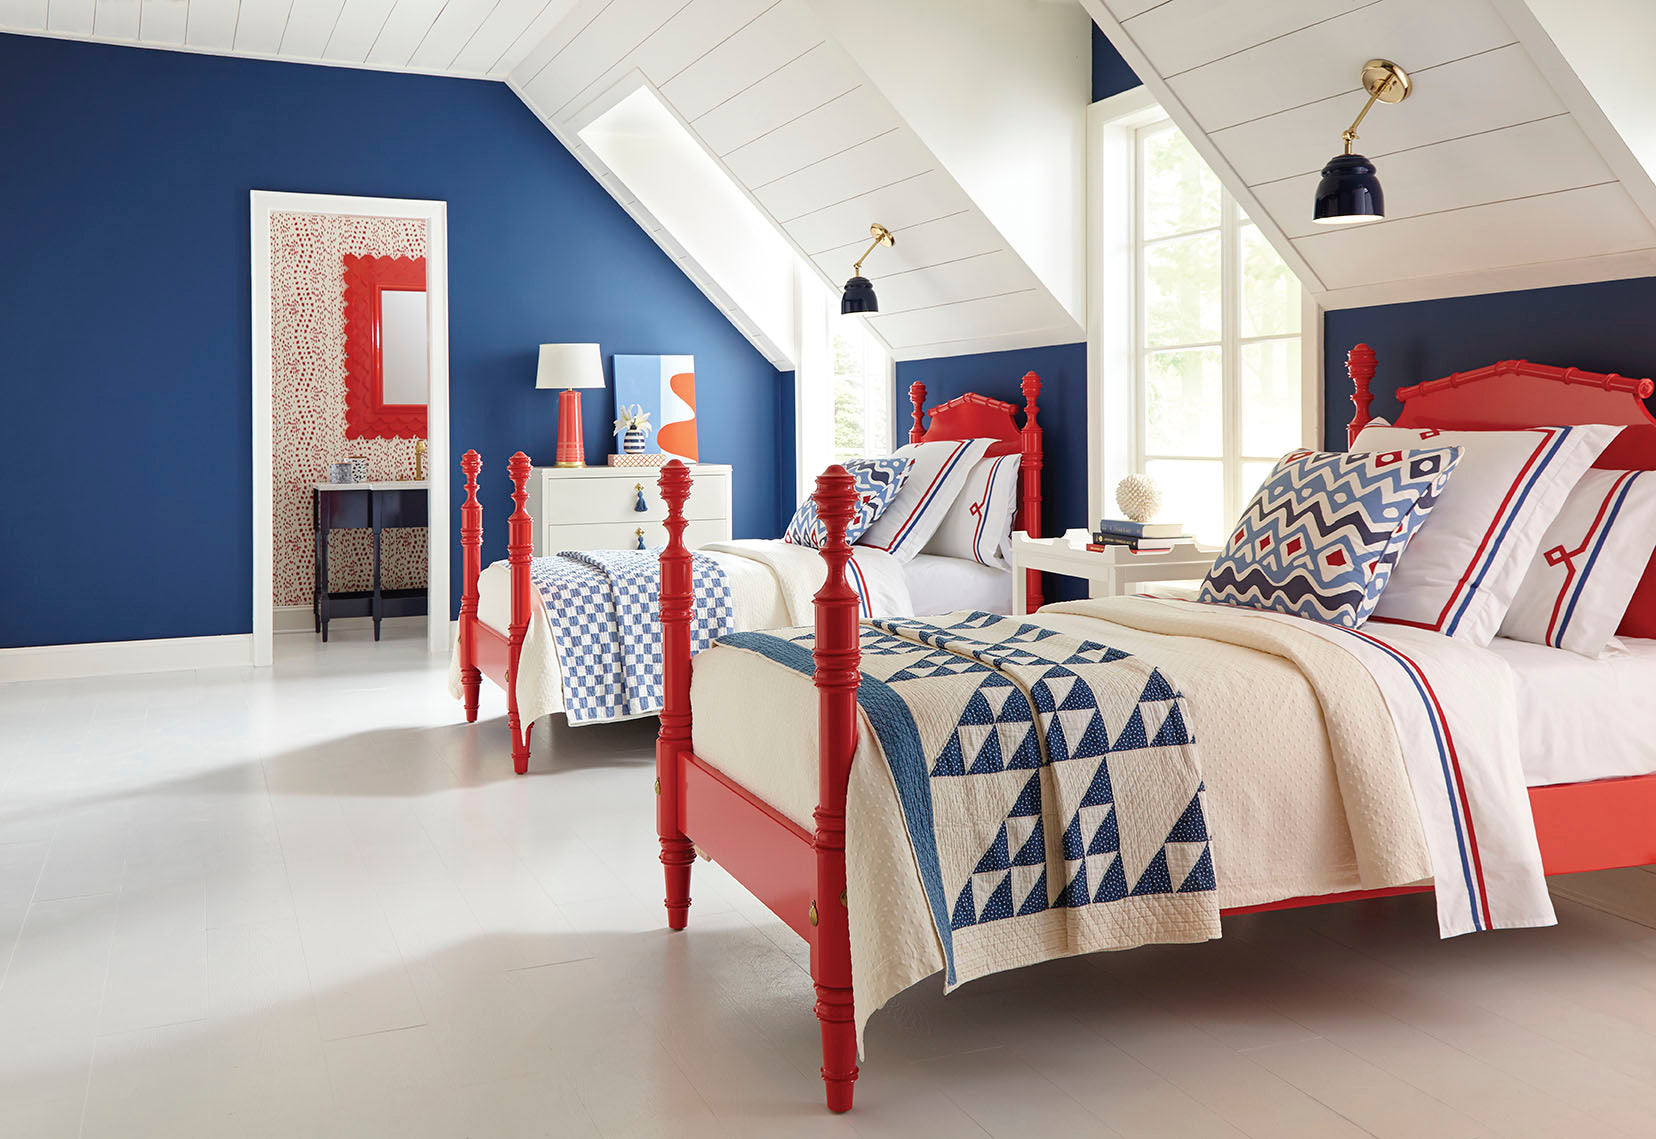 Wilton 4-Poster Bed - King